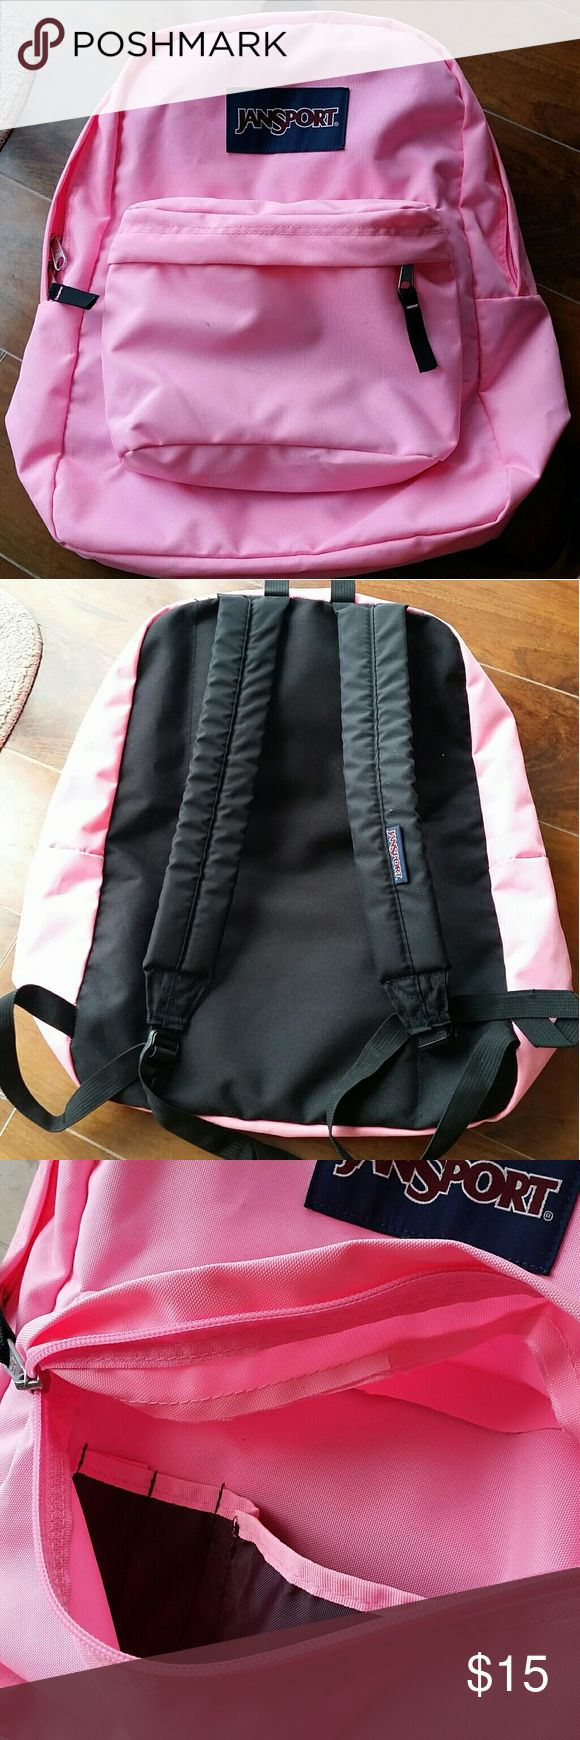 Pink Jansport backpack A very pink Jansport bag. Gently used, so has some scruff marks around the bag as pictured. Probably will wash off, have not tried. Bag itself is not that worn and still looks great. Jansport Bags Backpacks